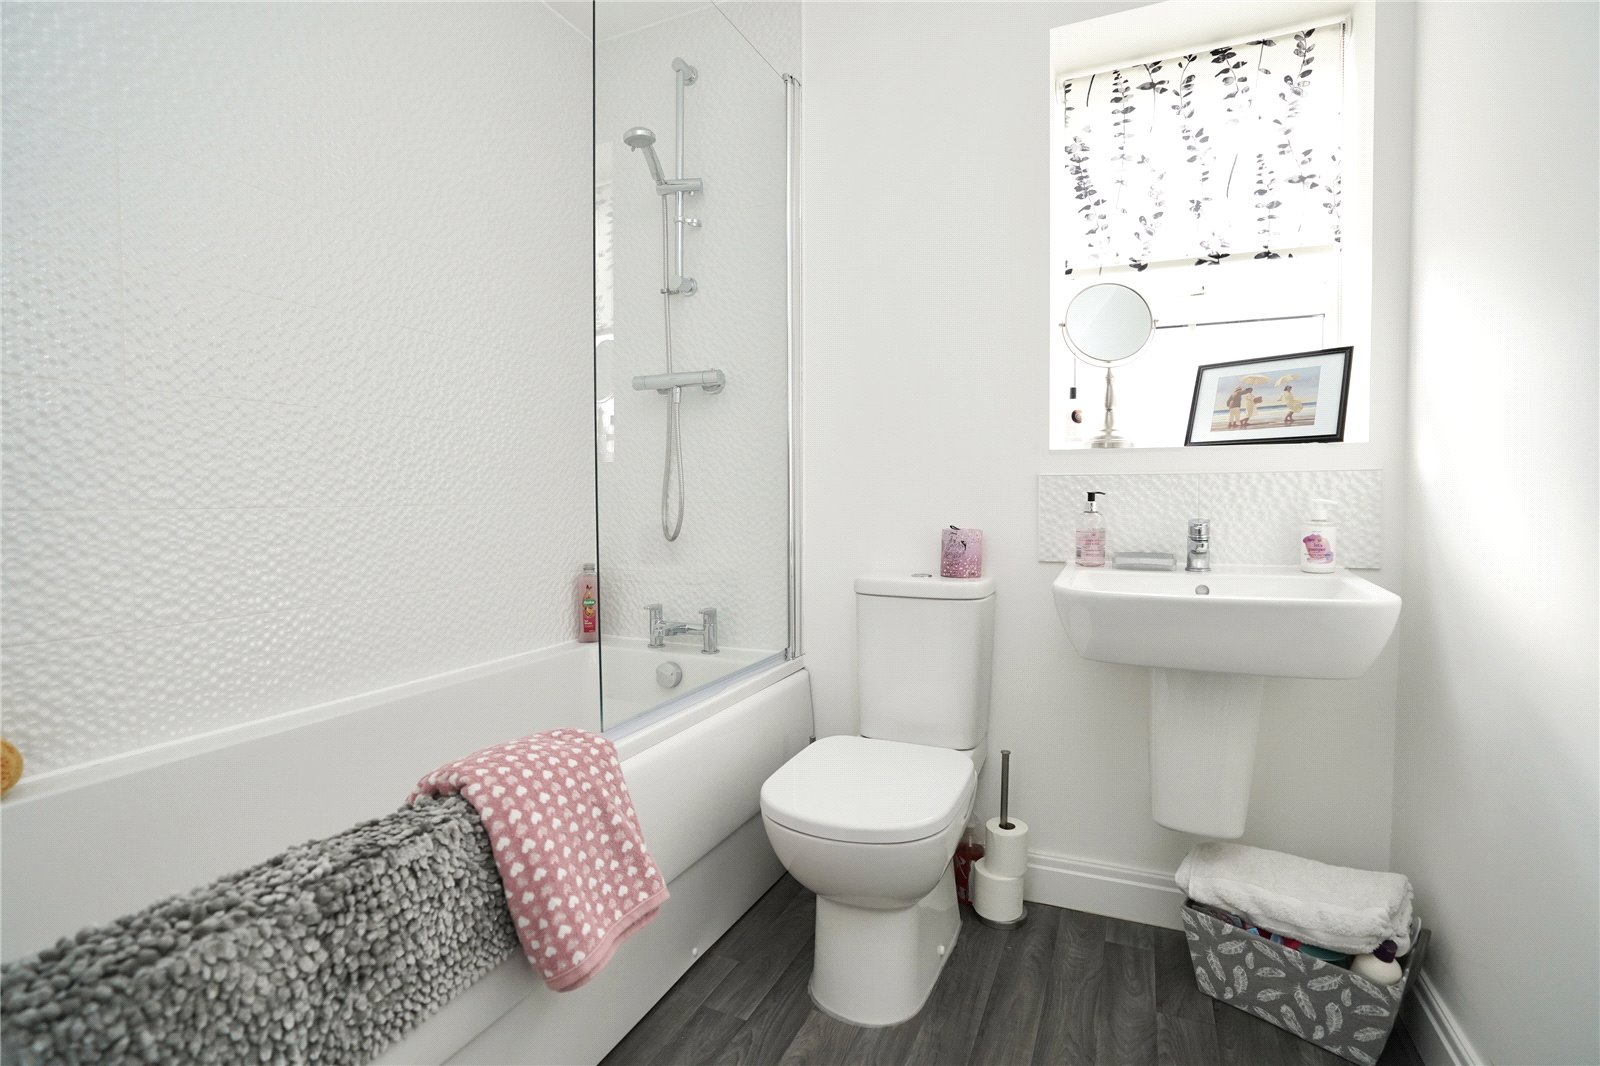 3 bed house for sale in Sawtry, PE28 5ZJ  - Property Image 11